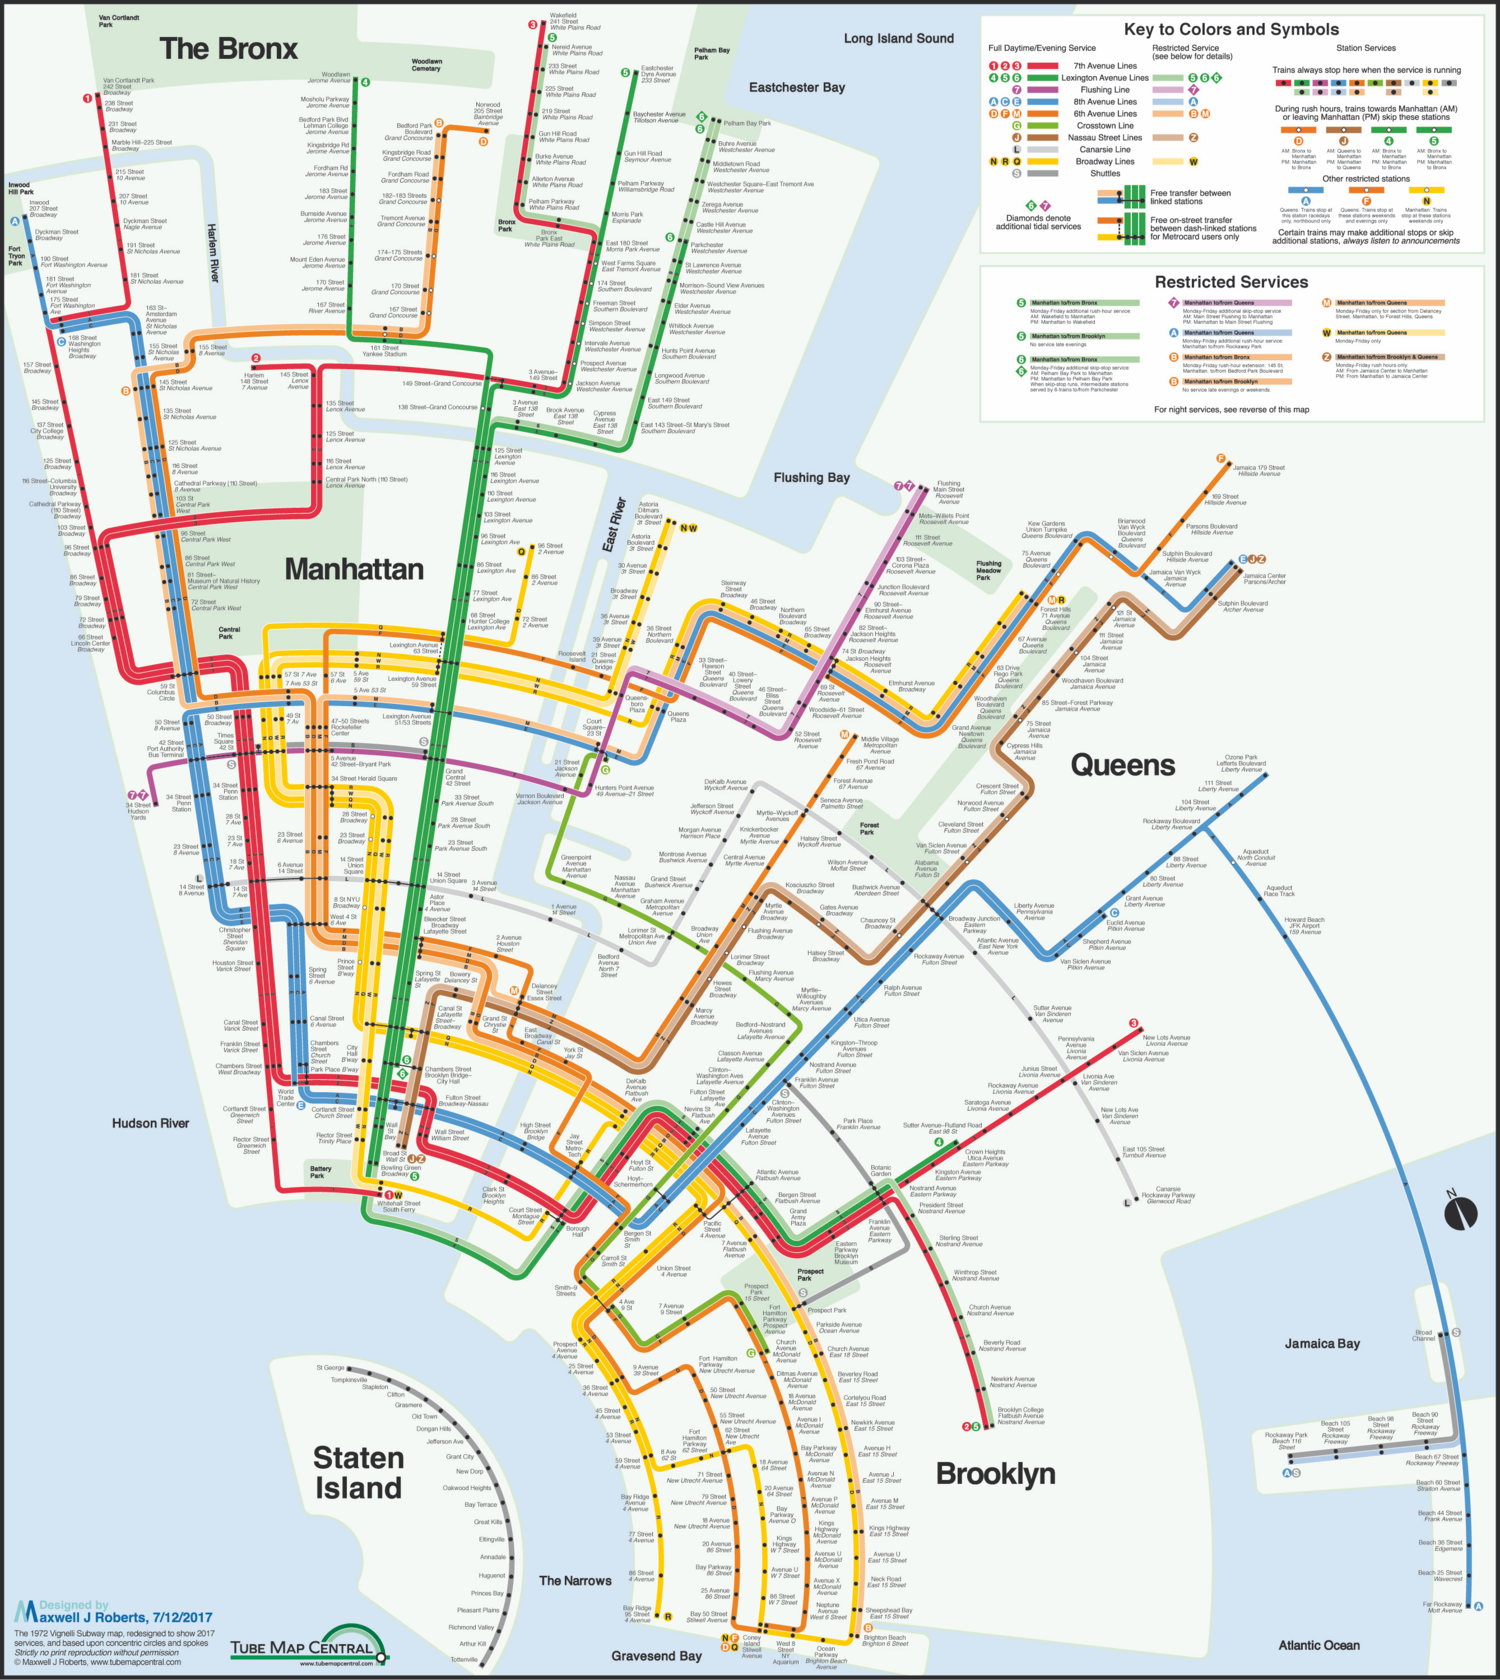 Ny City Subway Map Check Out This Vignelli Inspired New York City Subway Map Made of  Ny City Subway Map